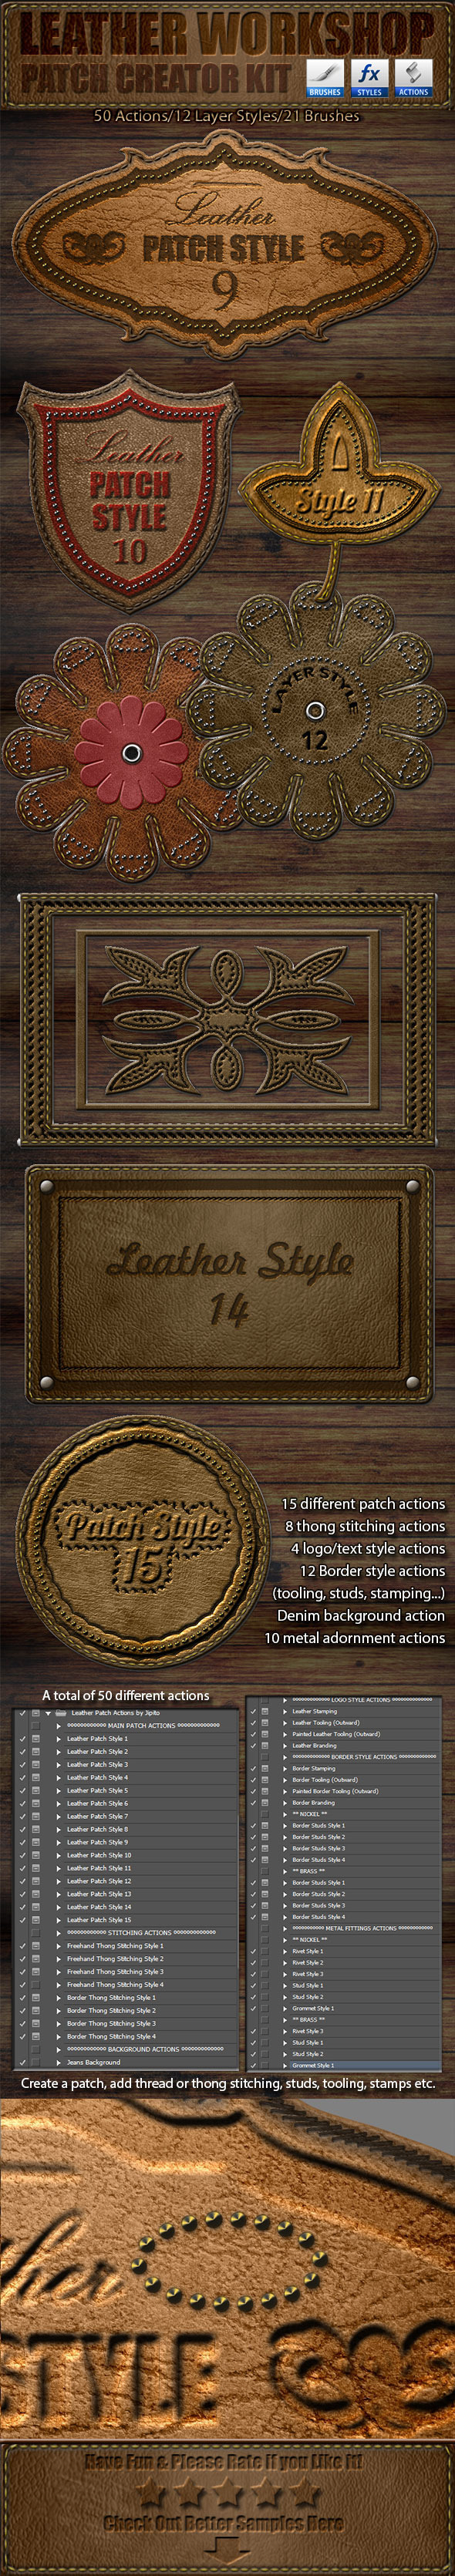 GraphicRiver Leather Workshop Patch Creator Kit 11650790